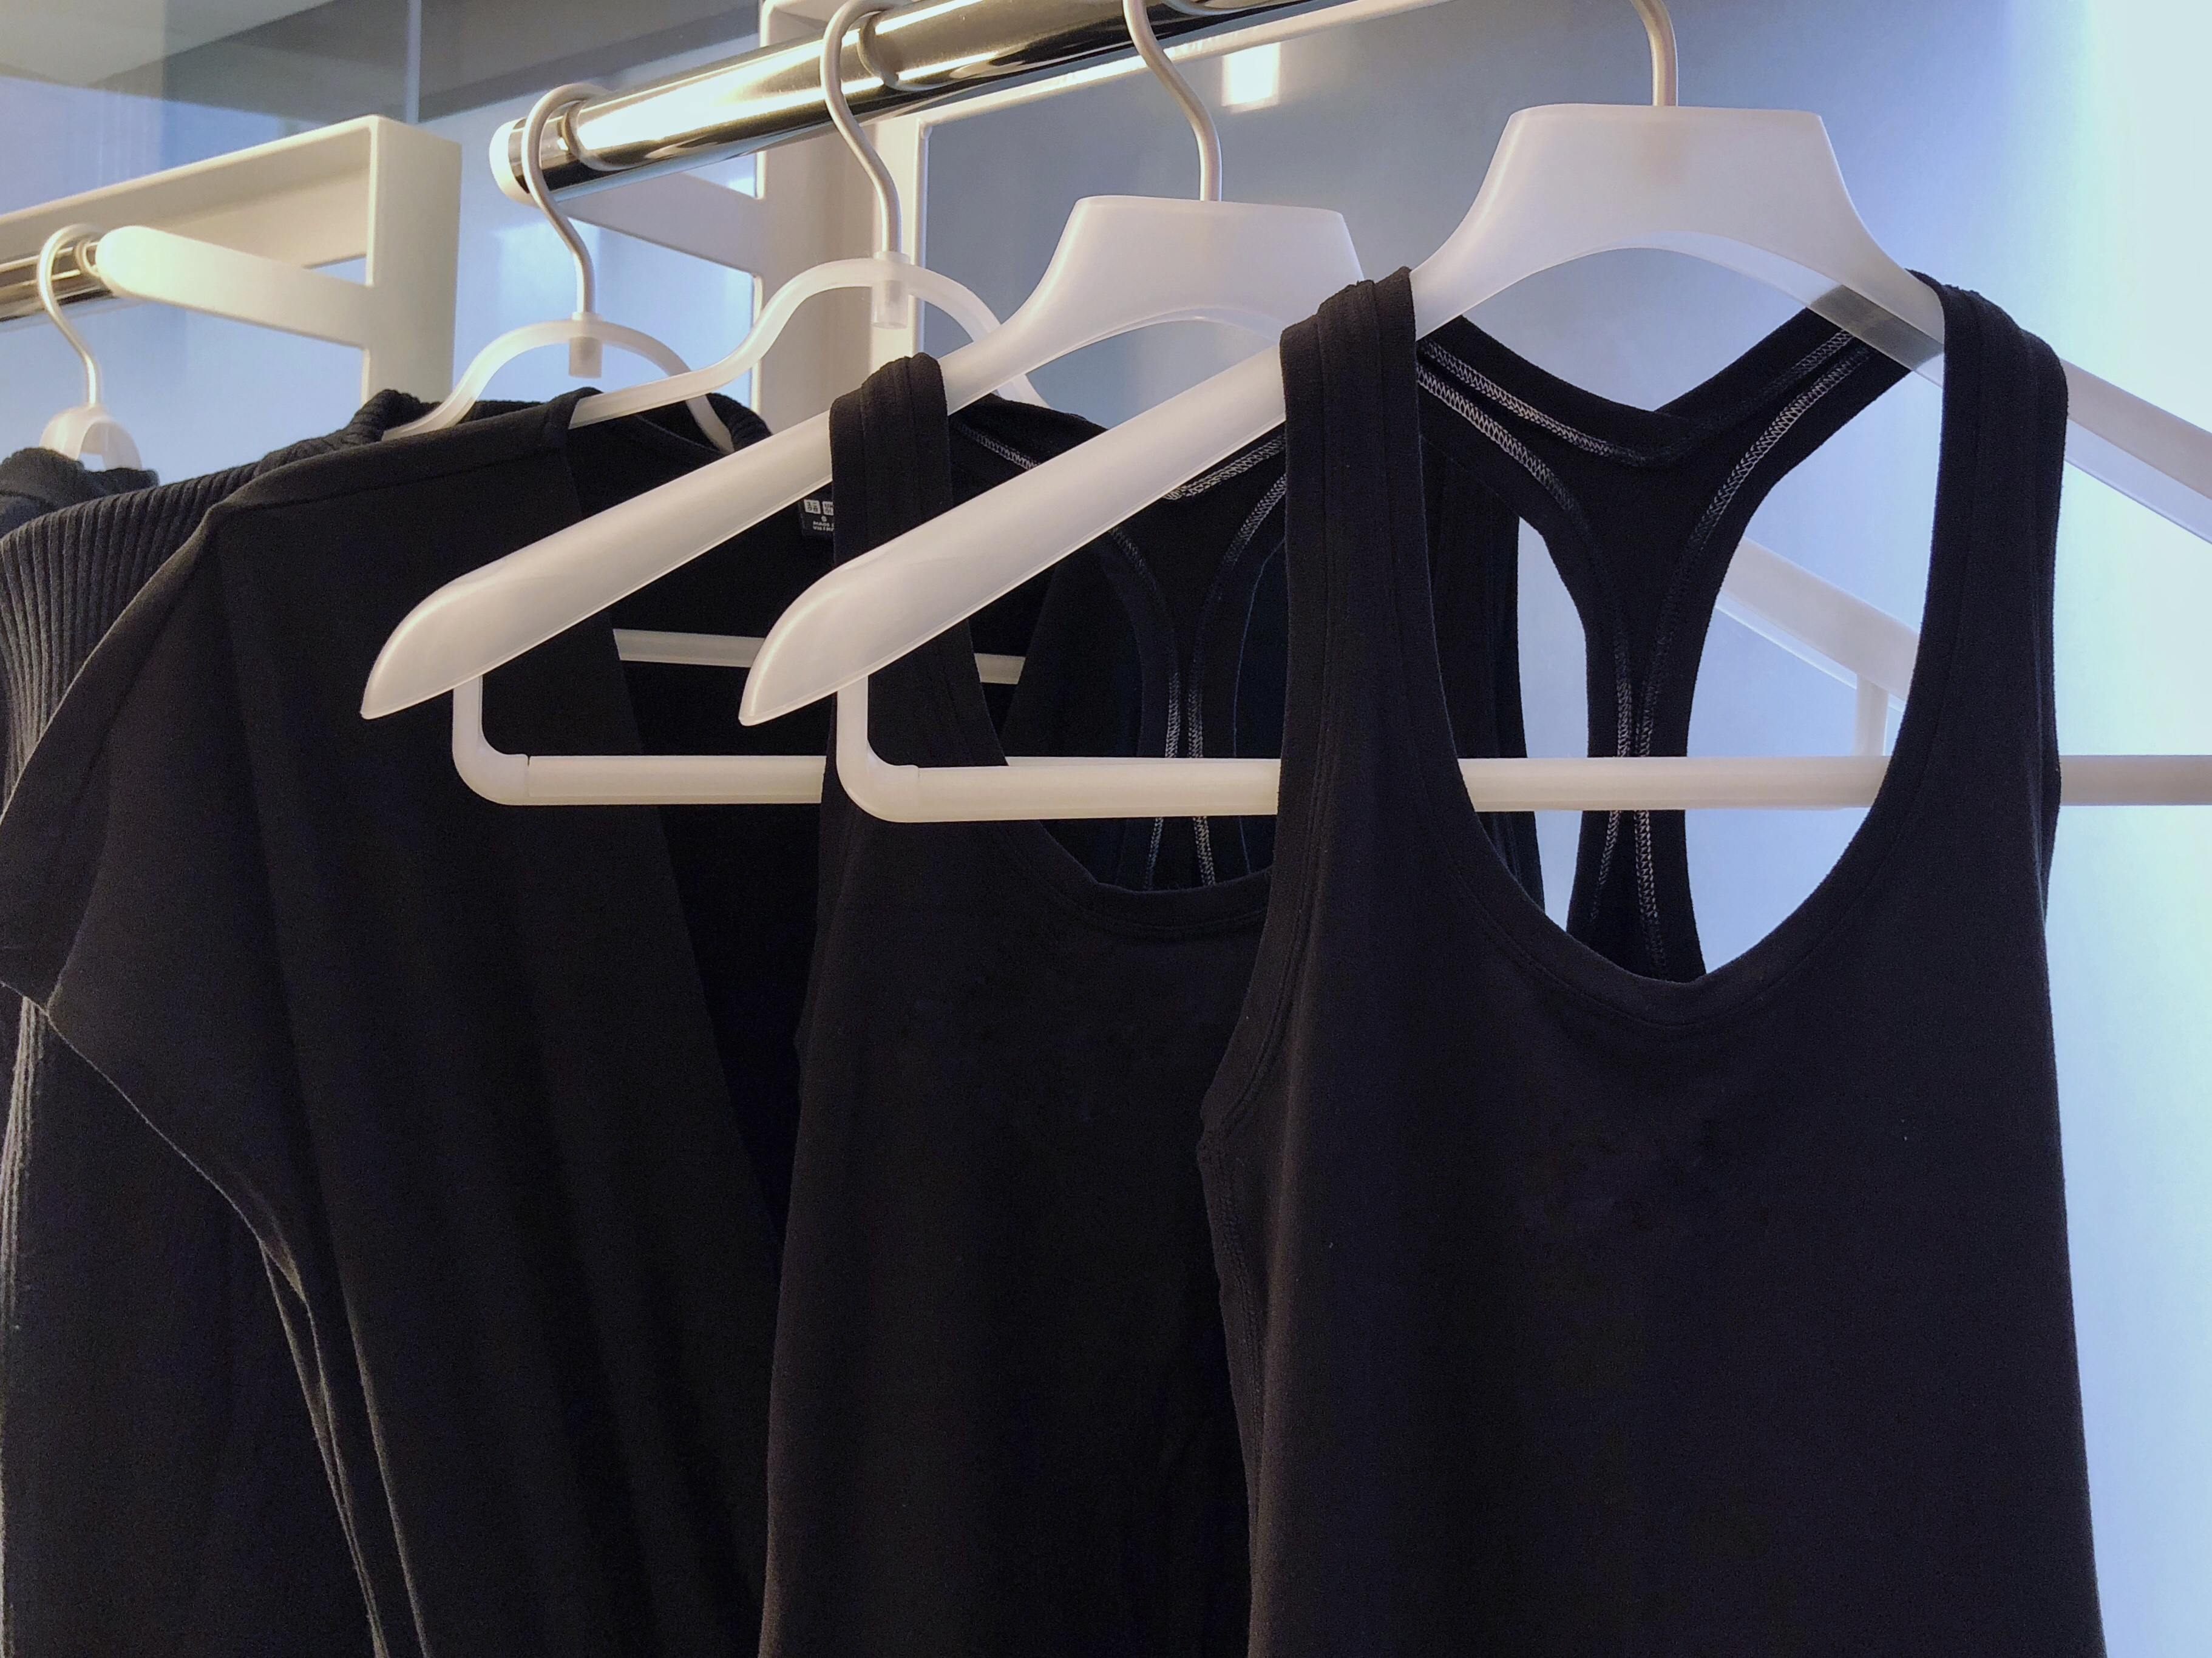 My clothes hanging on a rack